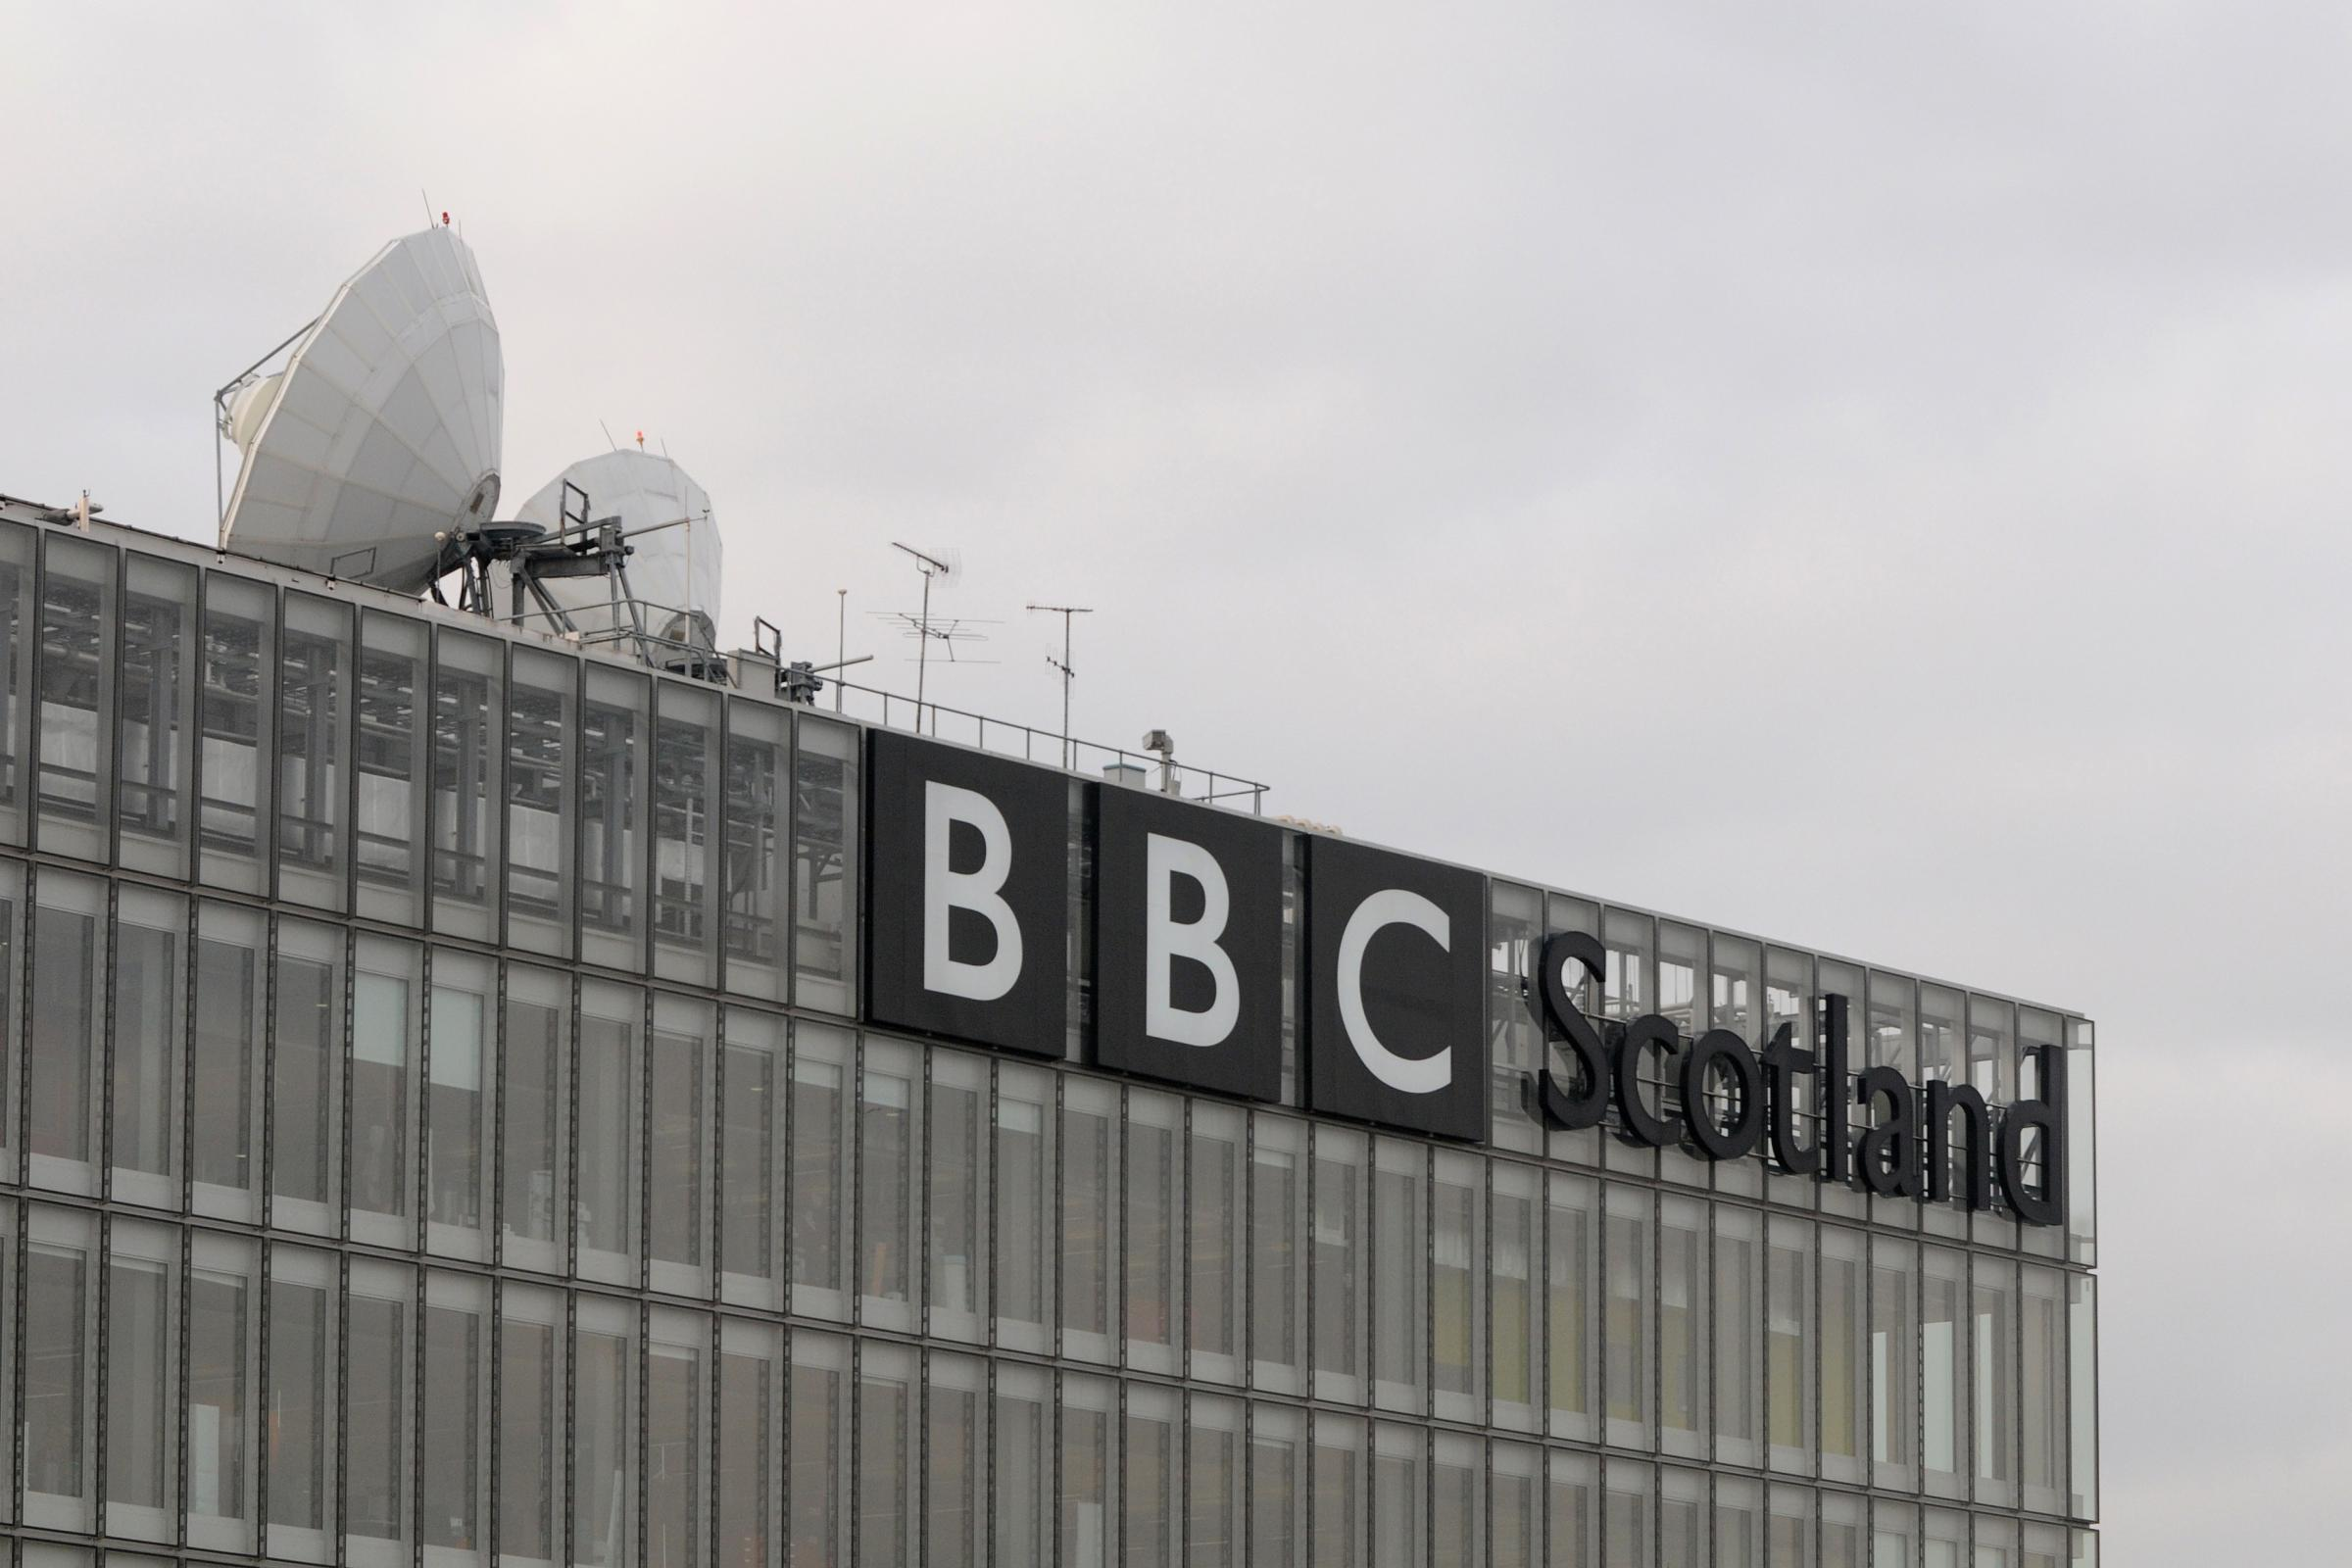 Experts say BBC 'misleading' people on Scotland's NHS in open letter